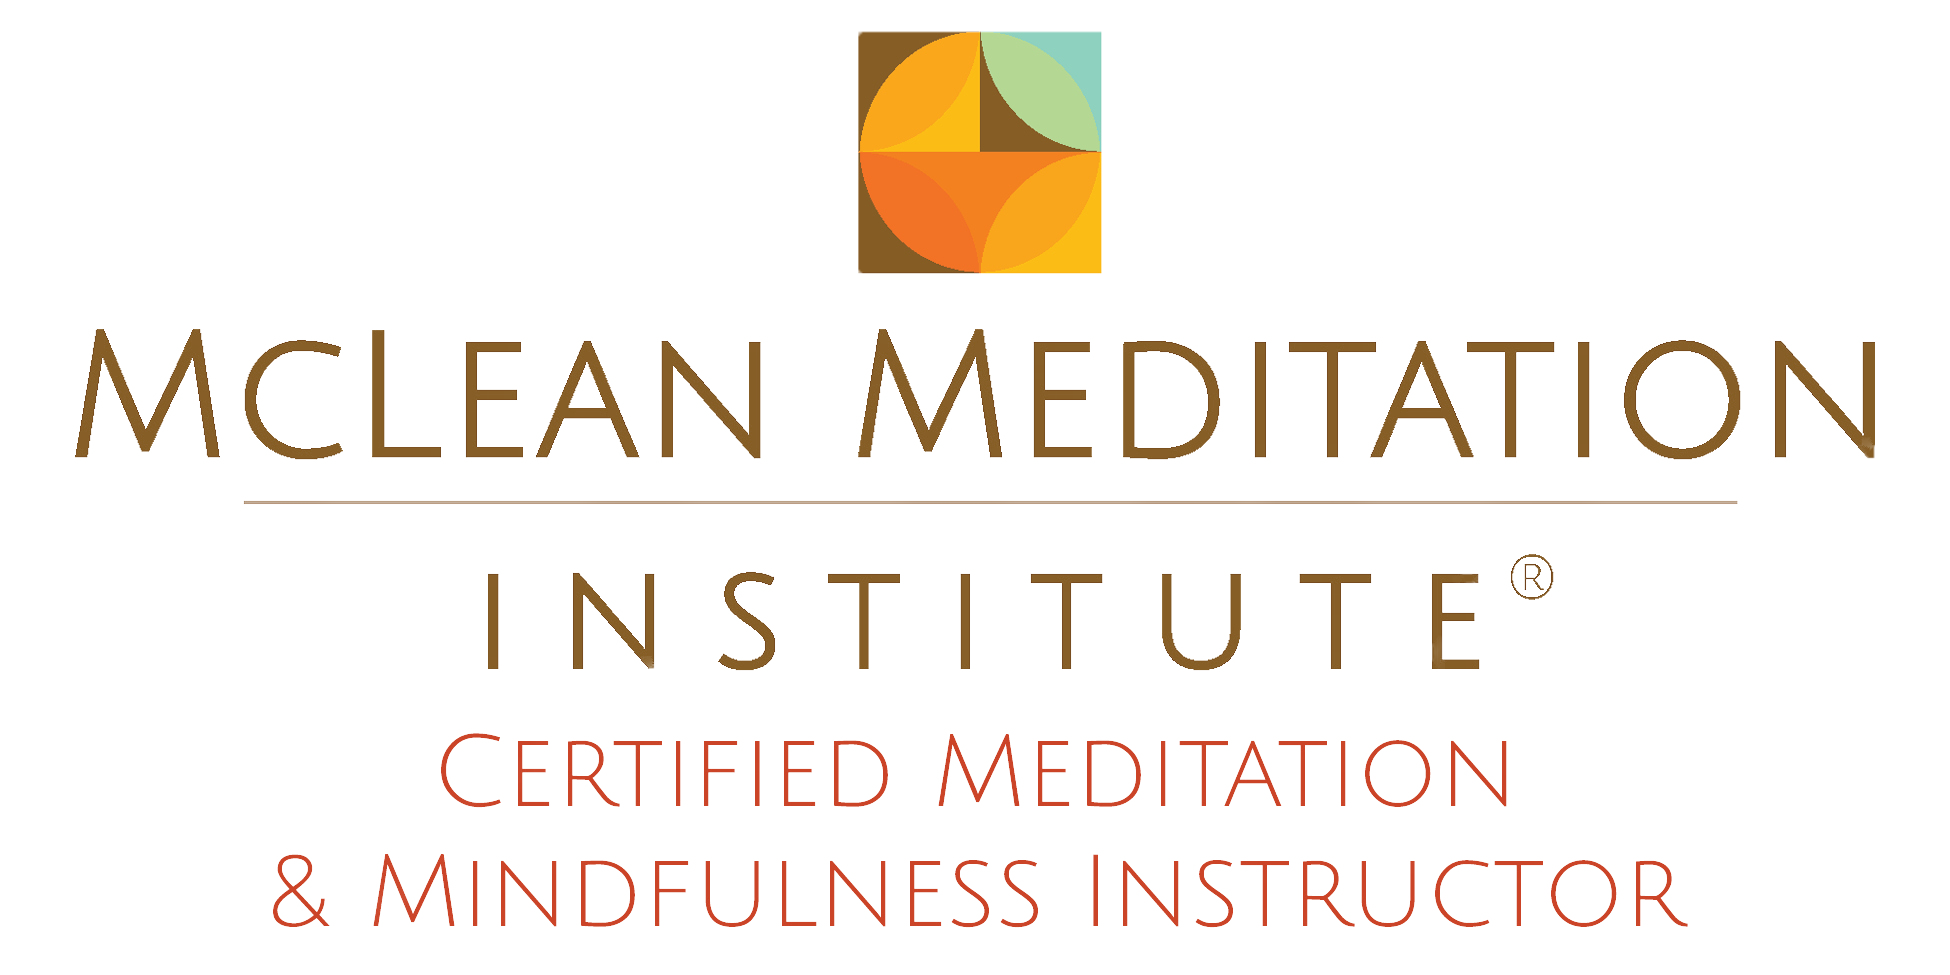 McLean Mindfulness Meditation